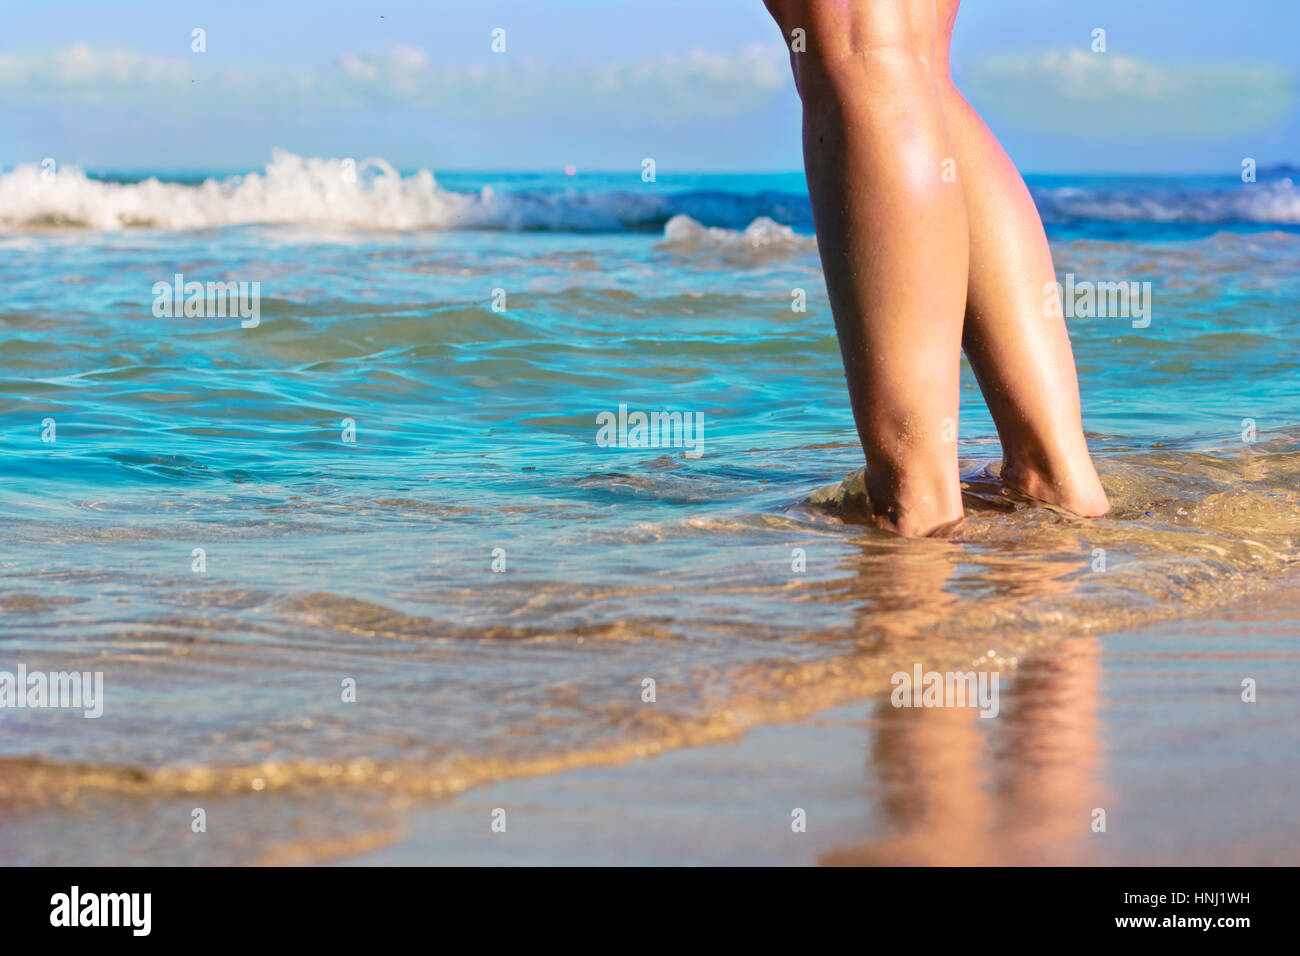 Girl standing with her feet in the water at 7 mile beach in Jamaica - Stock Image